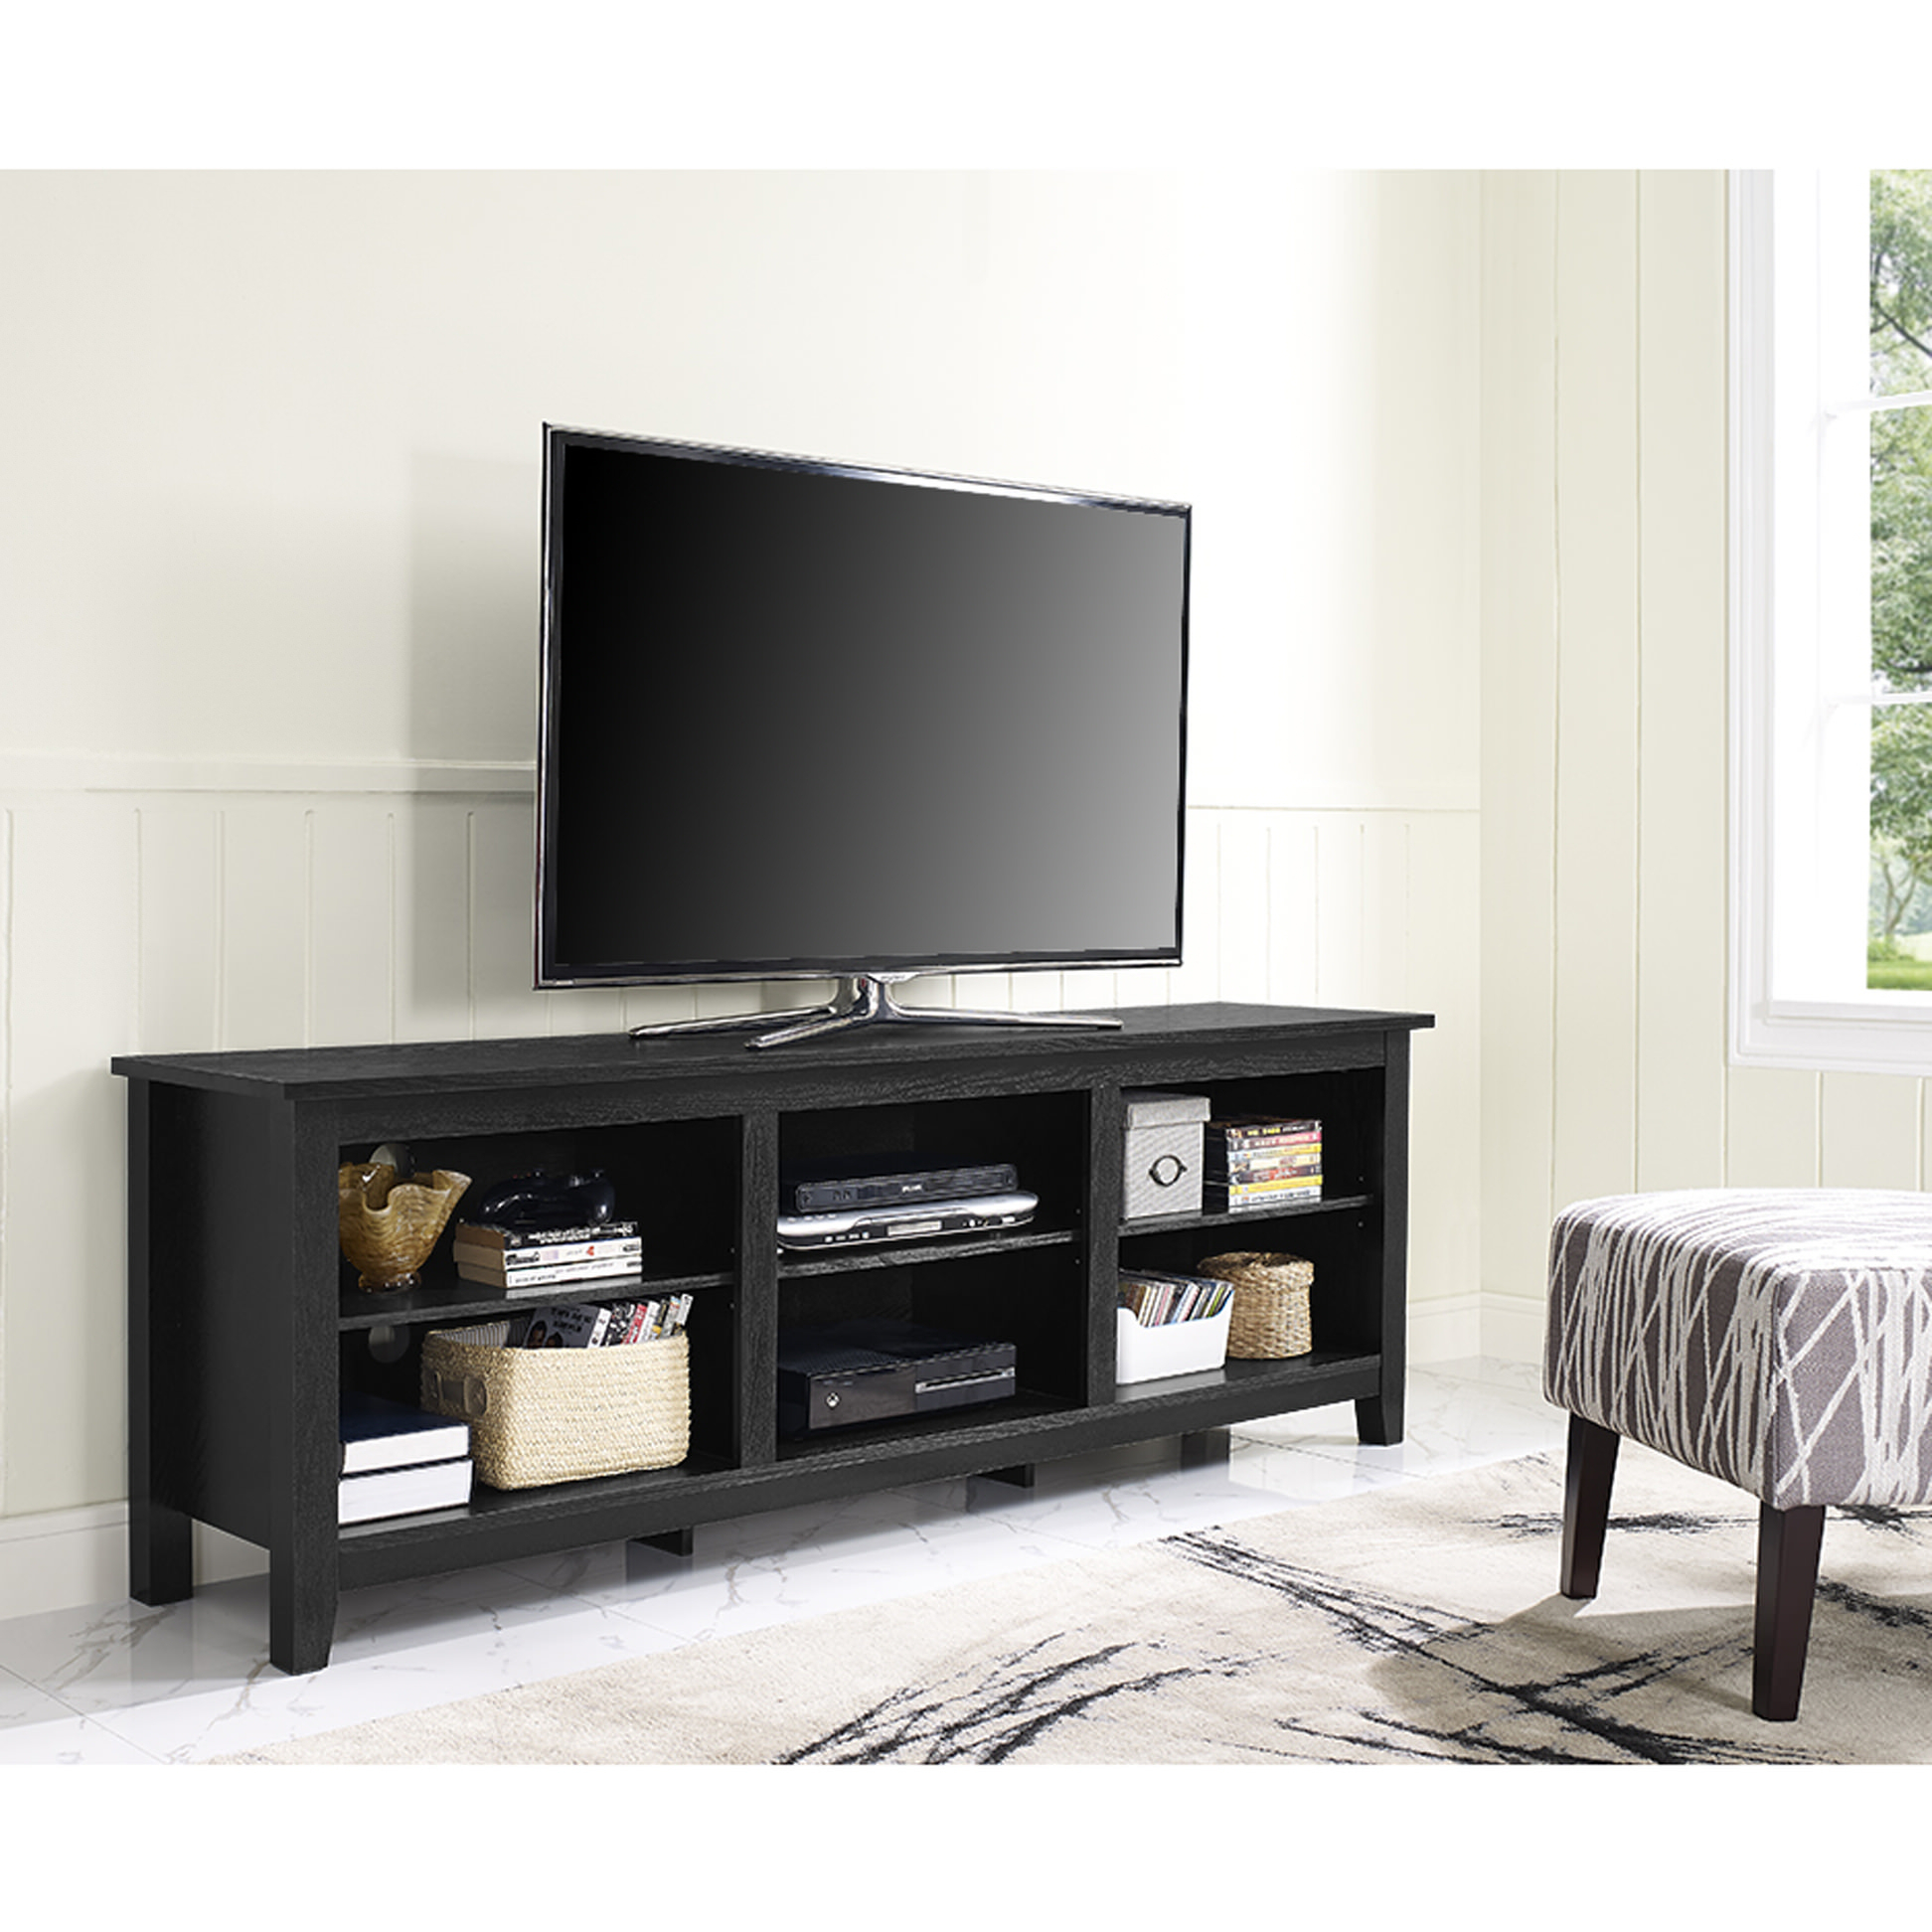 Essentials 70 Inch Tv Stand – Blackwalker Edison Pertaining To Canyon 64 Inch Tv Stands (View 19 of 20)